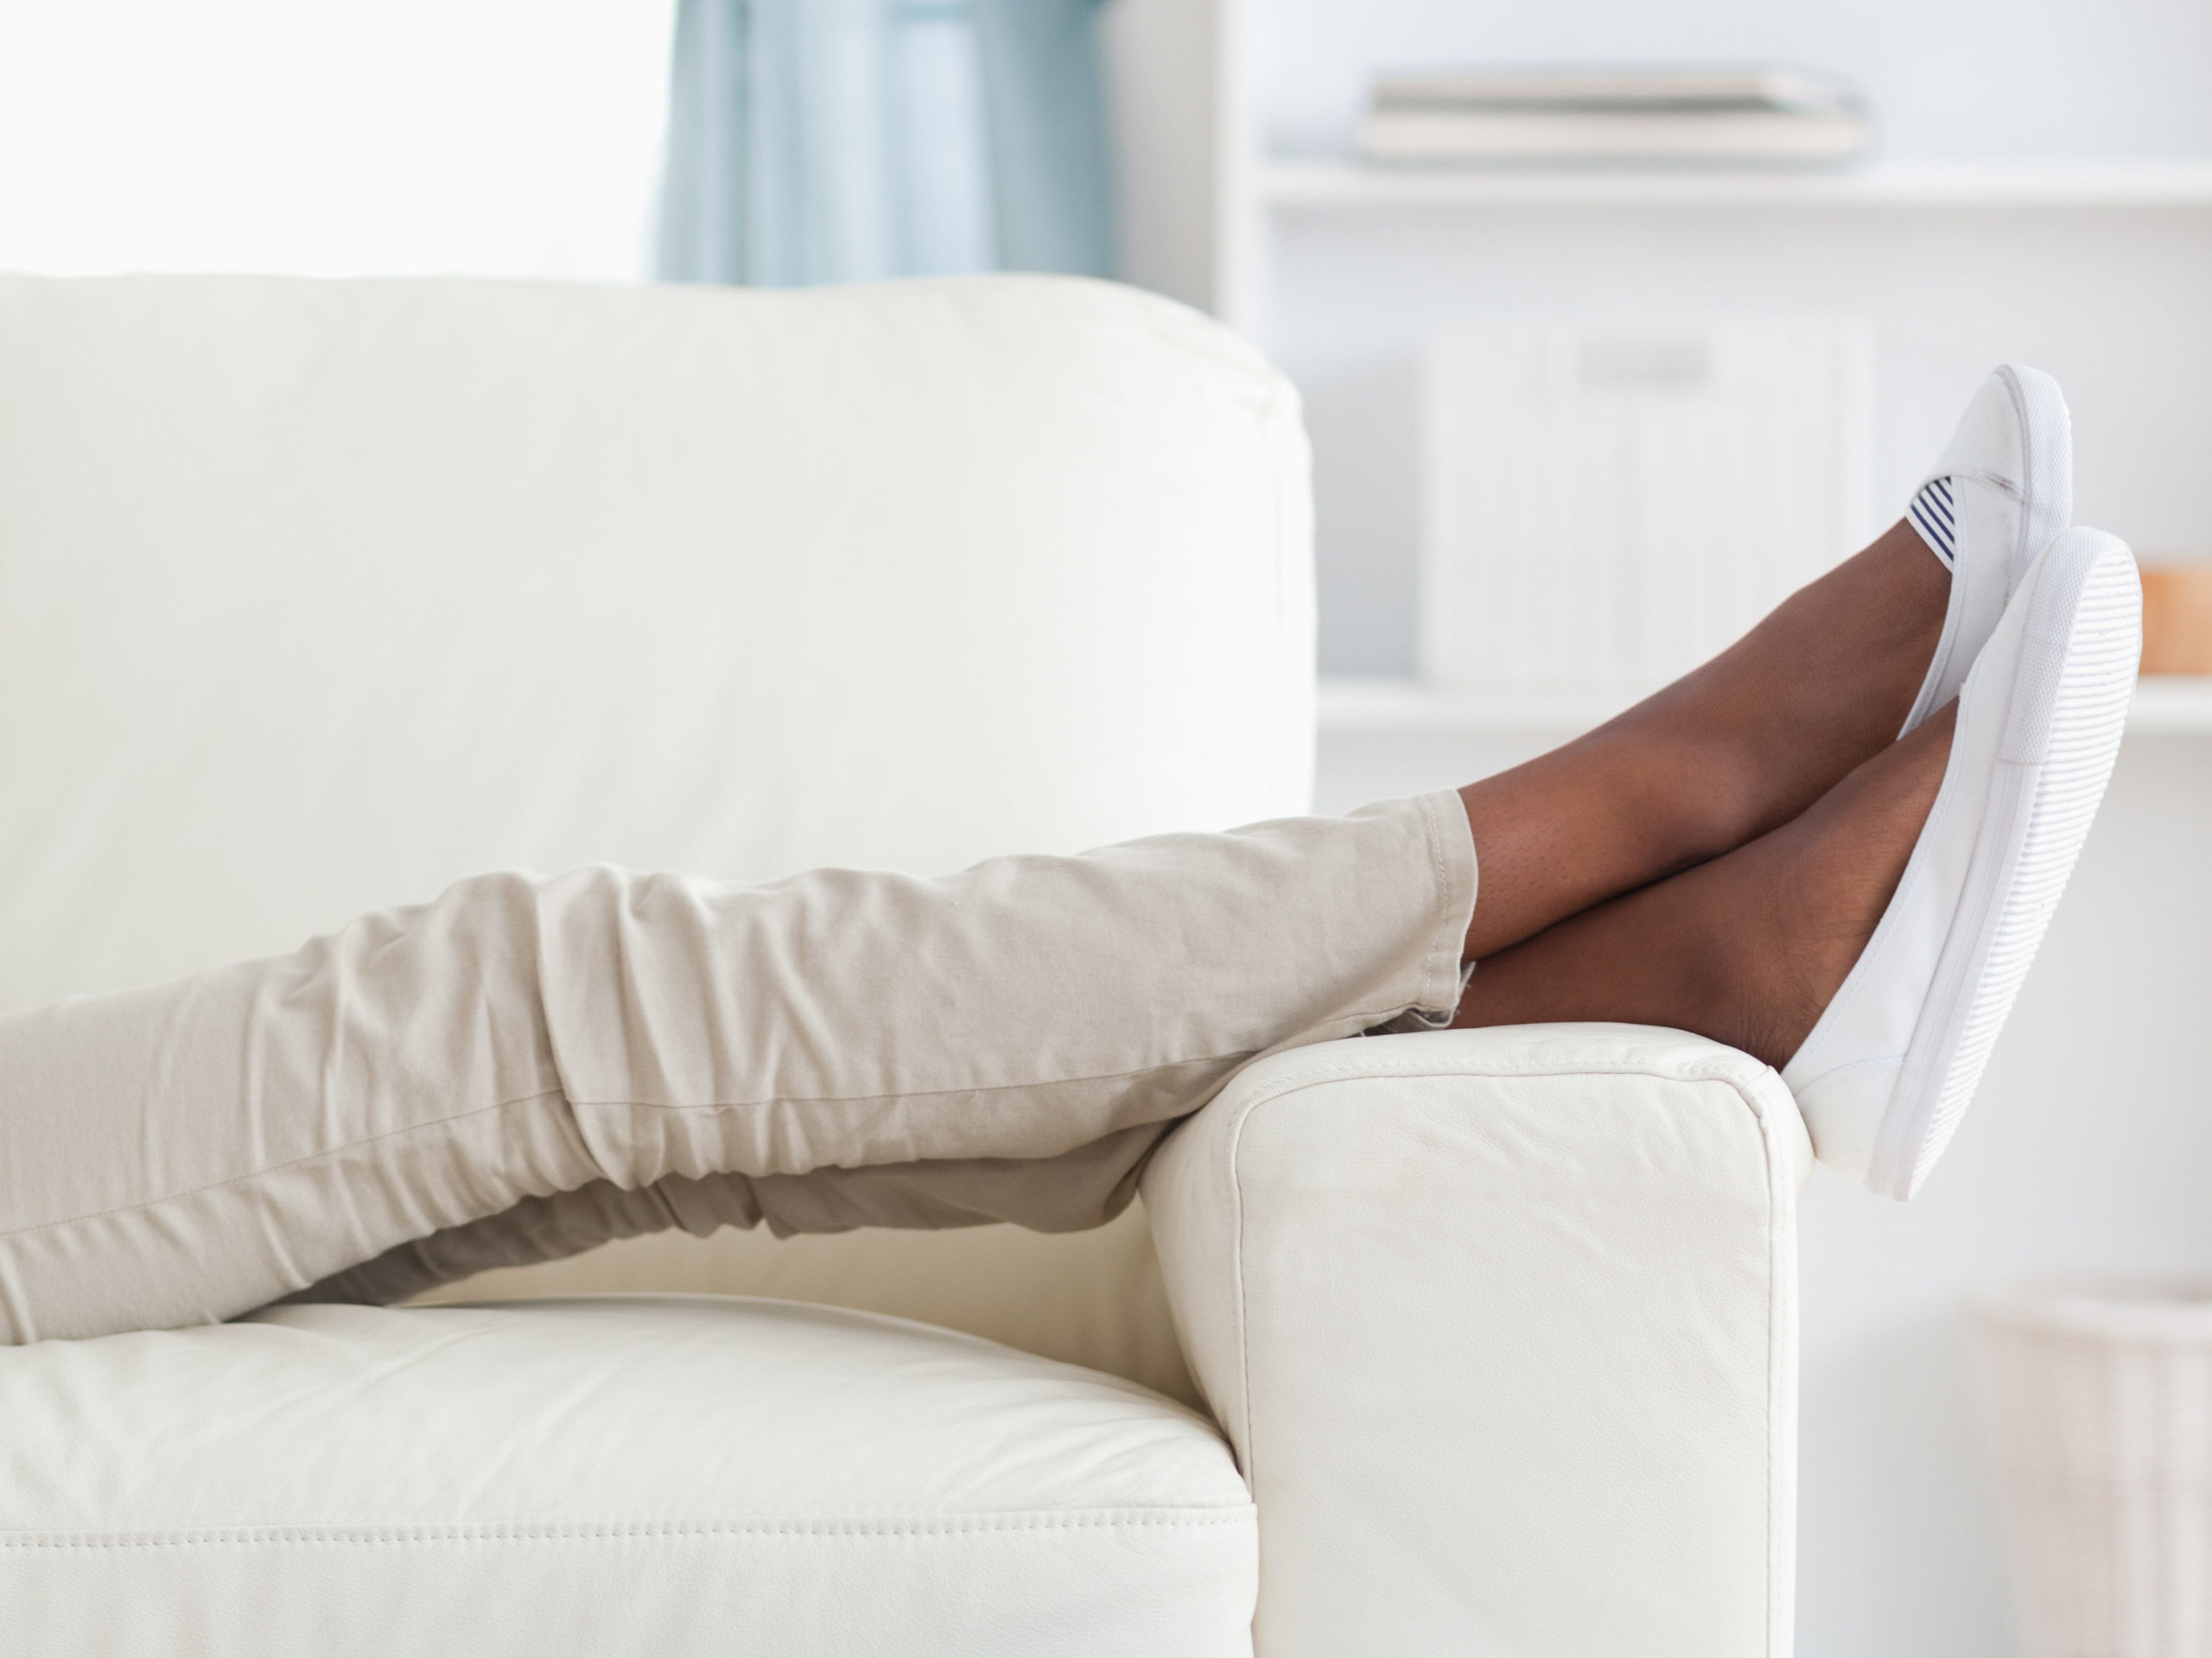 Young woman on couch putting her feet up during staycation